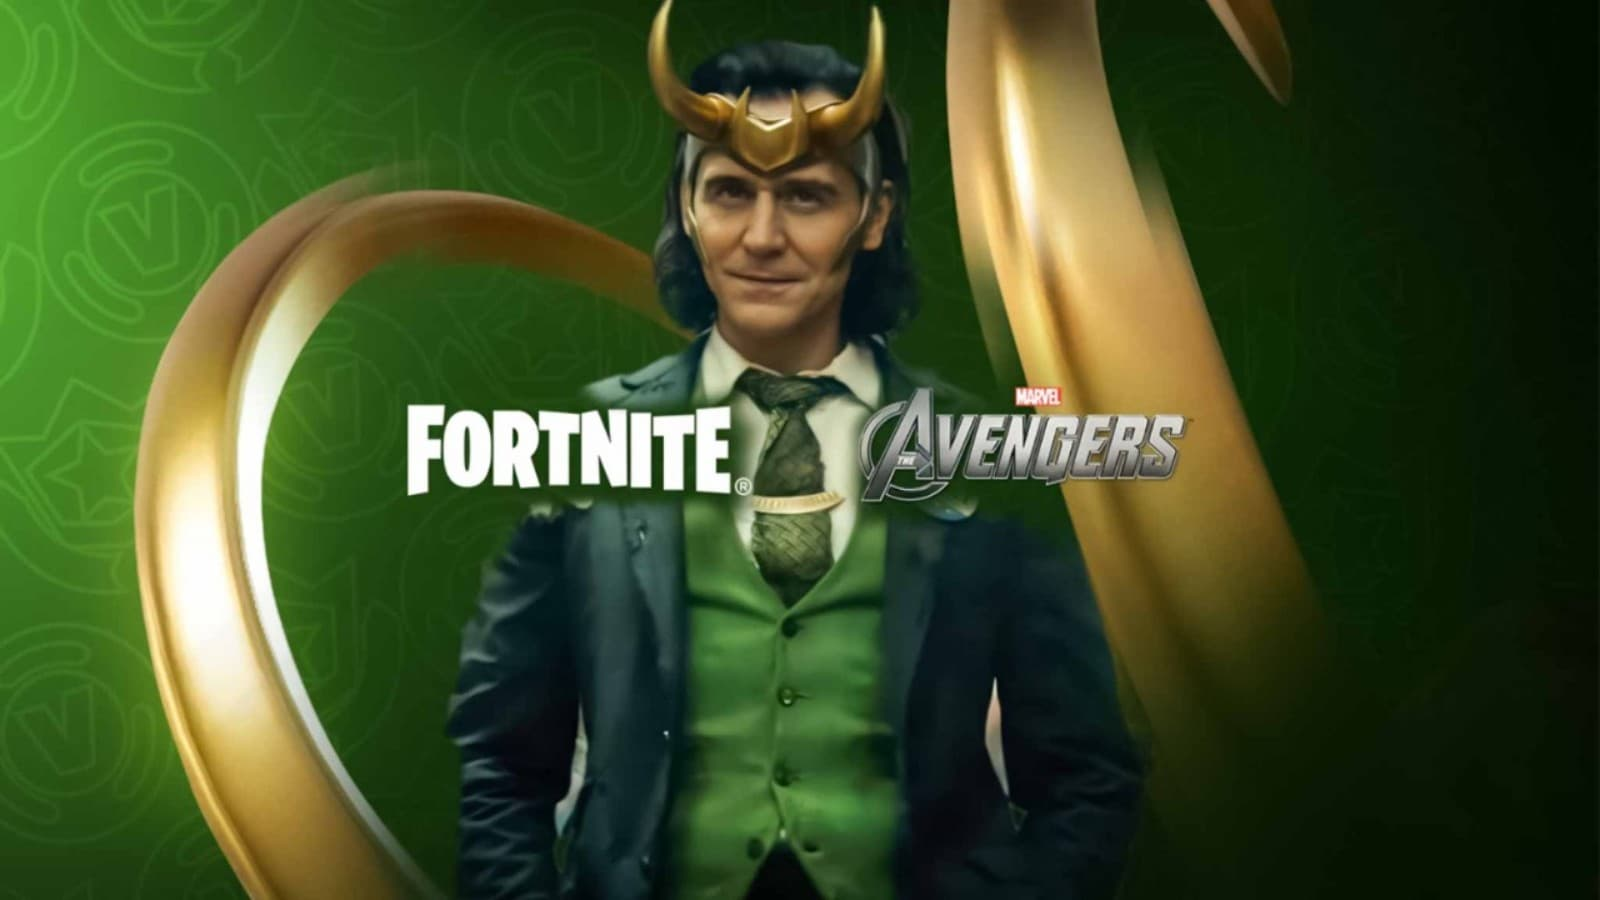 Fortnite Loki Crew Pack: How to Get New Skin in Chapter 2